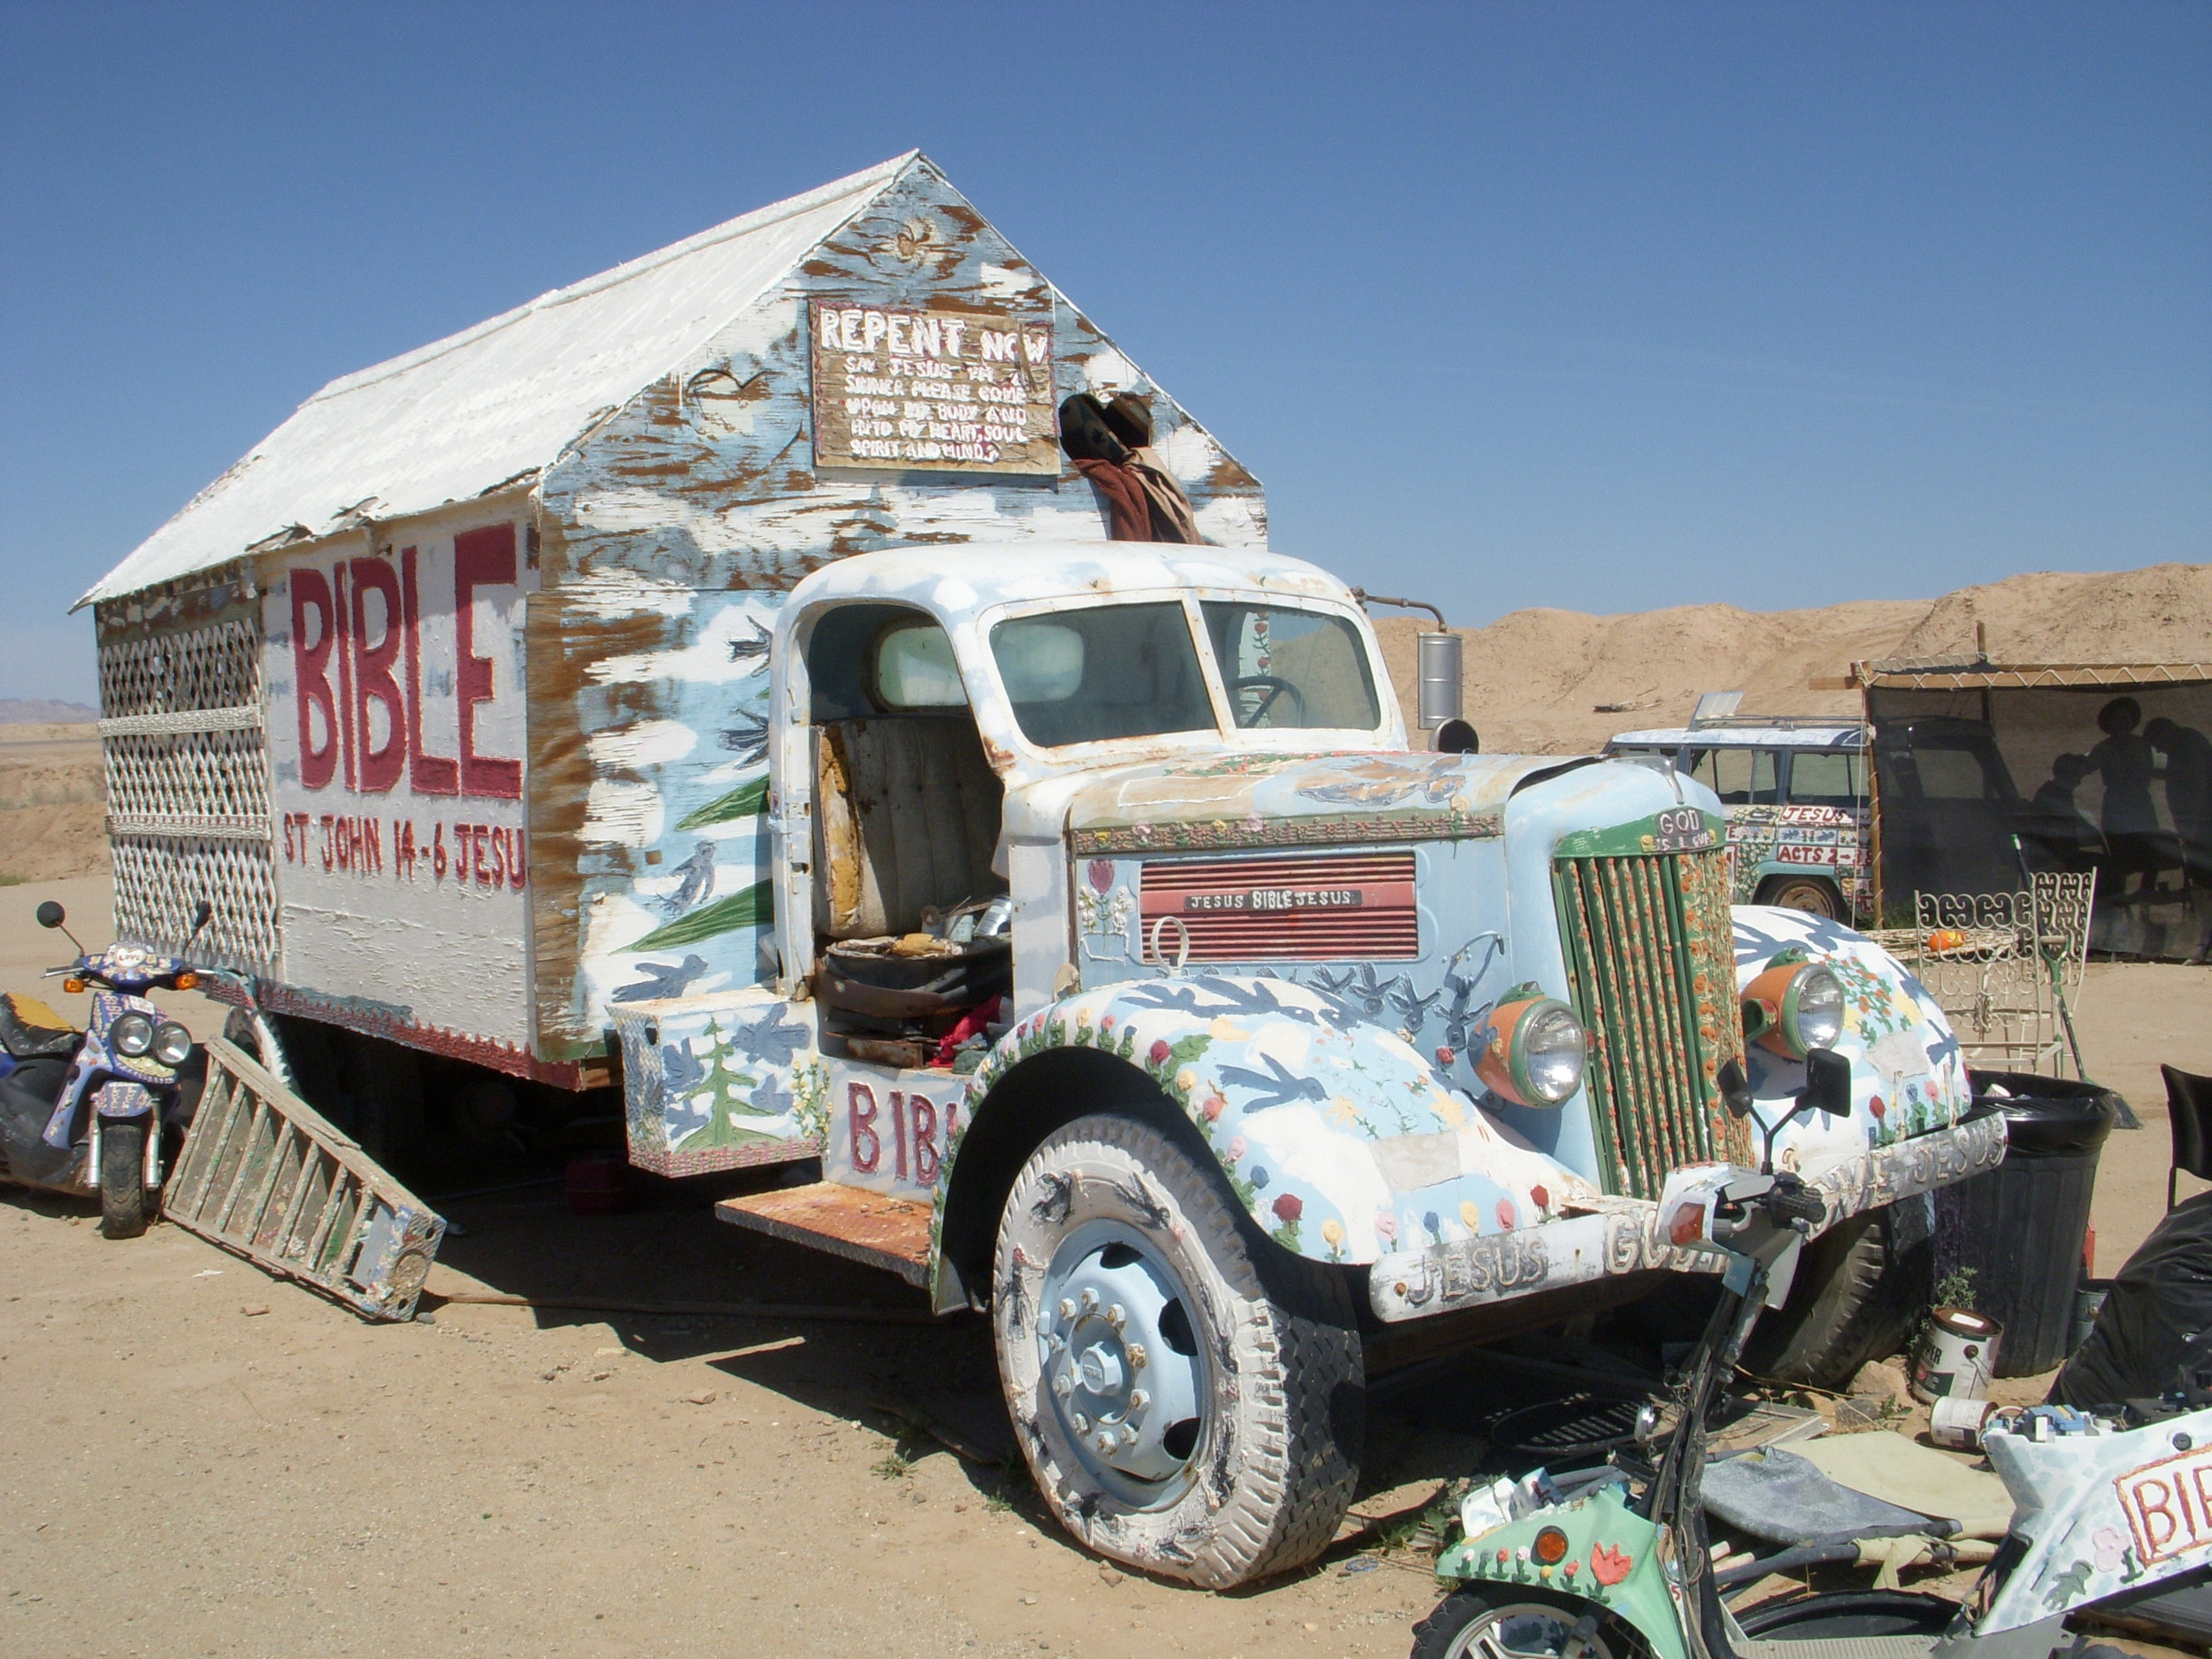 If you want to see Salvation Mountain, drive out to the Salton Sea and take a left.  If you hit Slab City, you've gone too far.